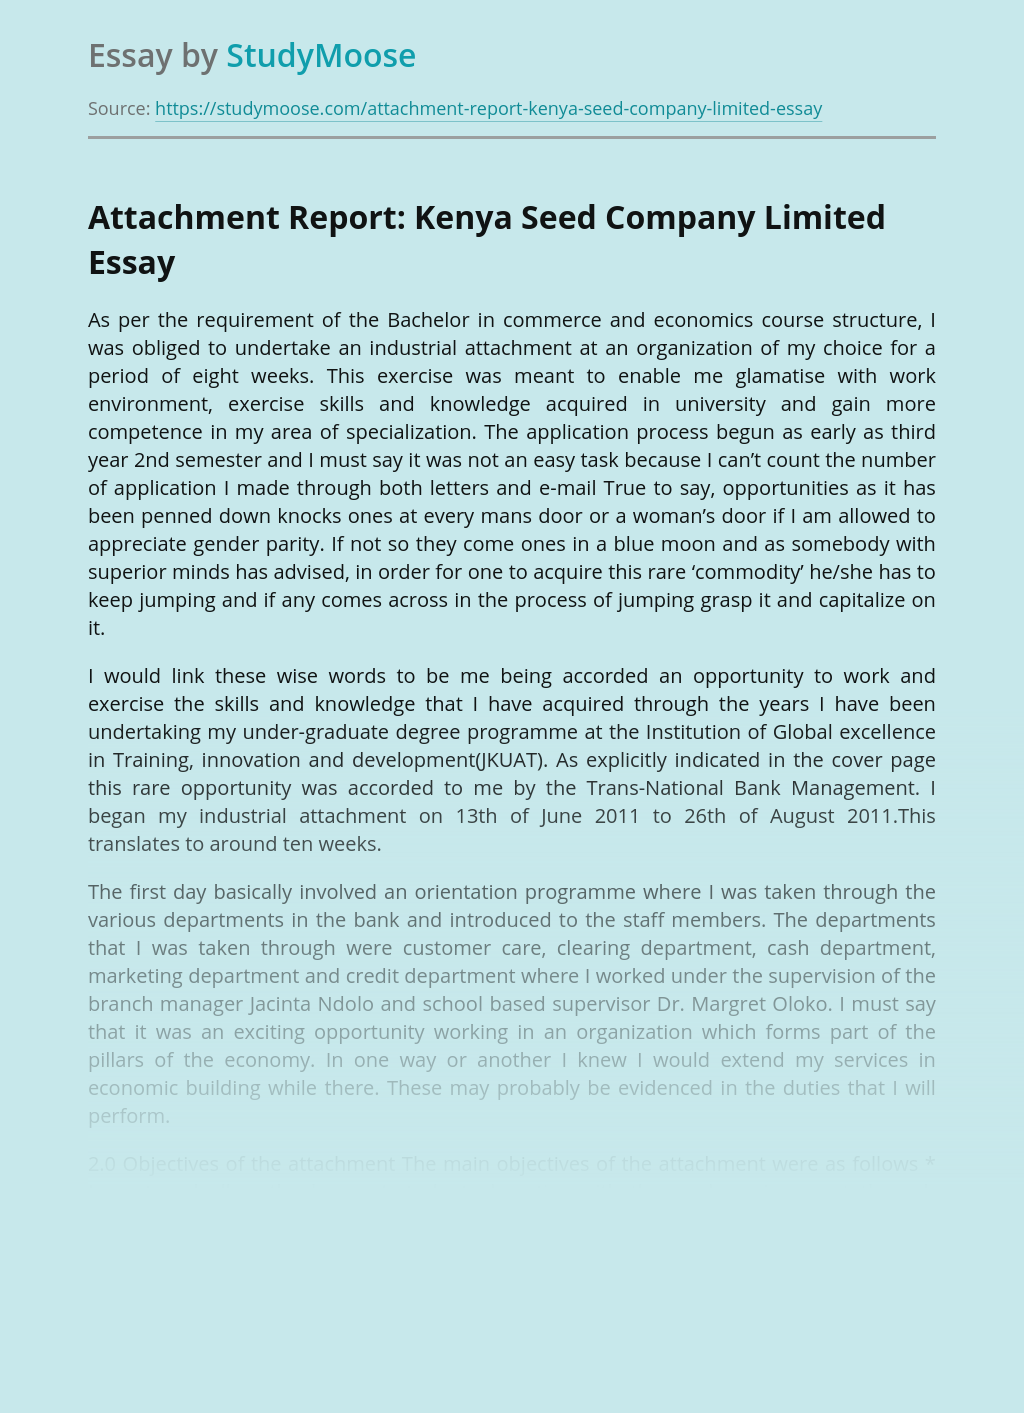 Attachment Report: Kenya Seed Company Limited